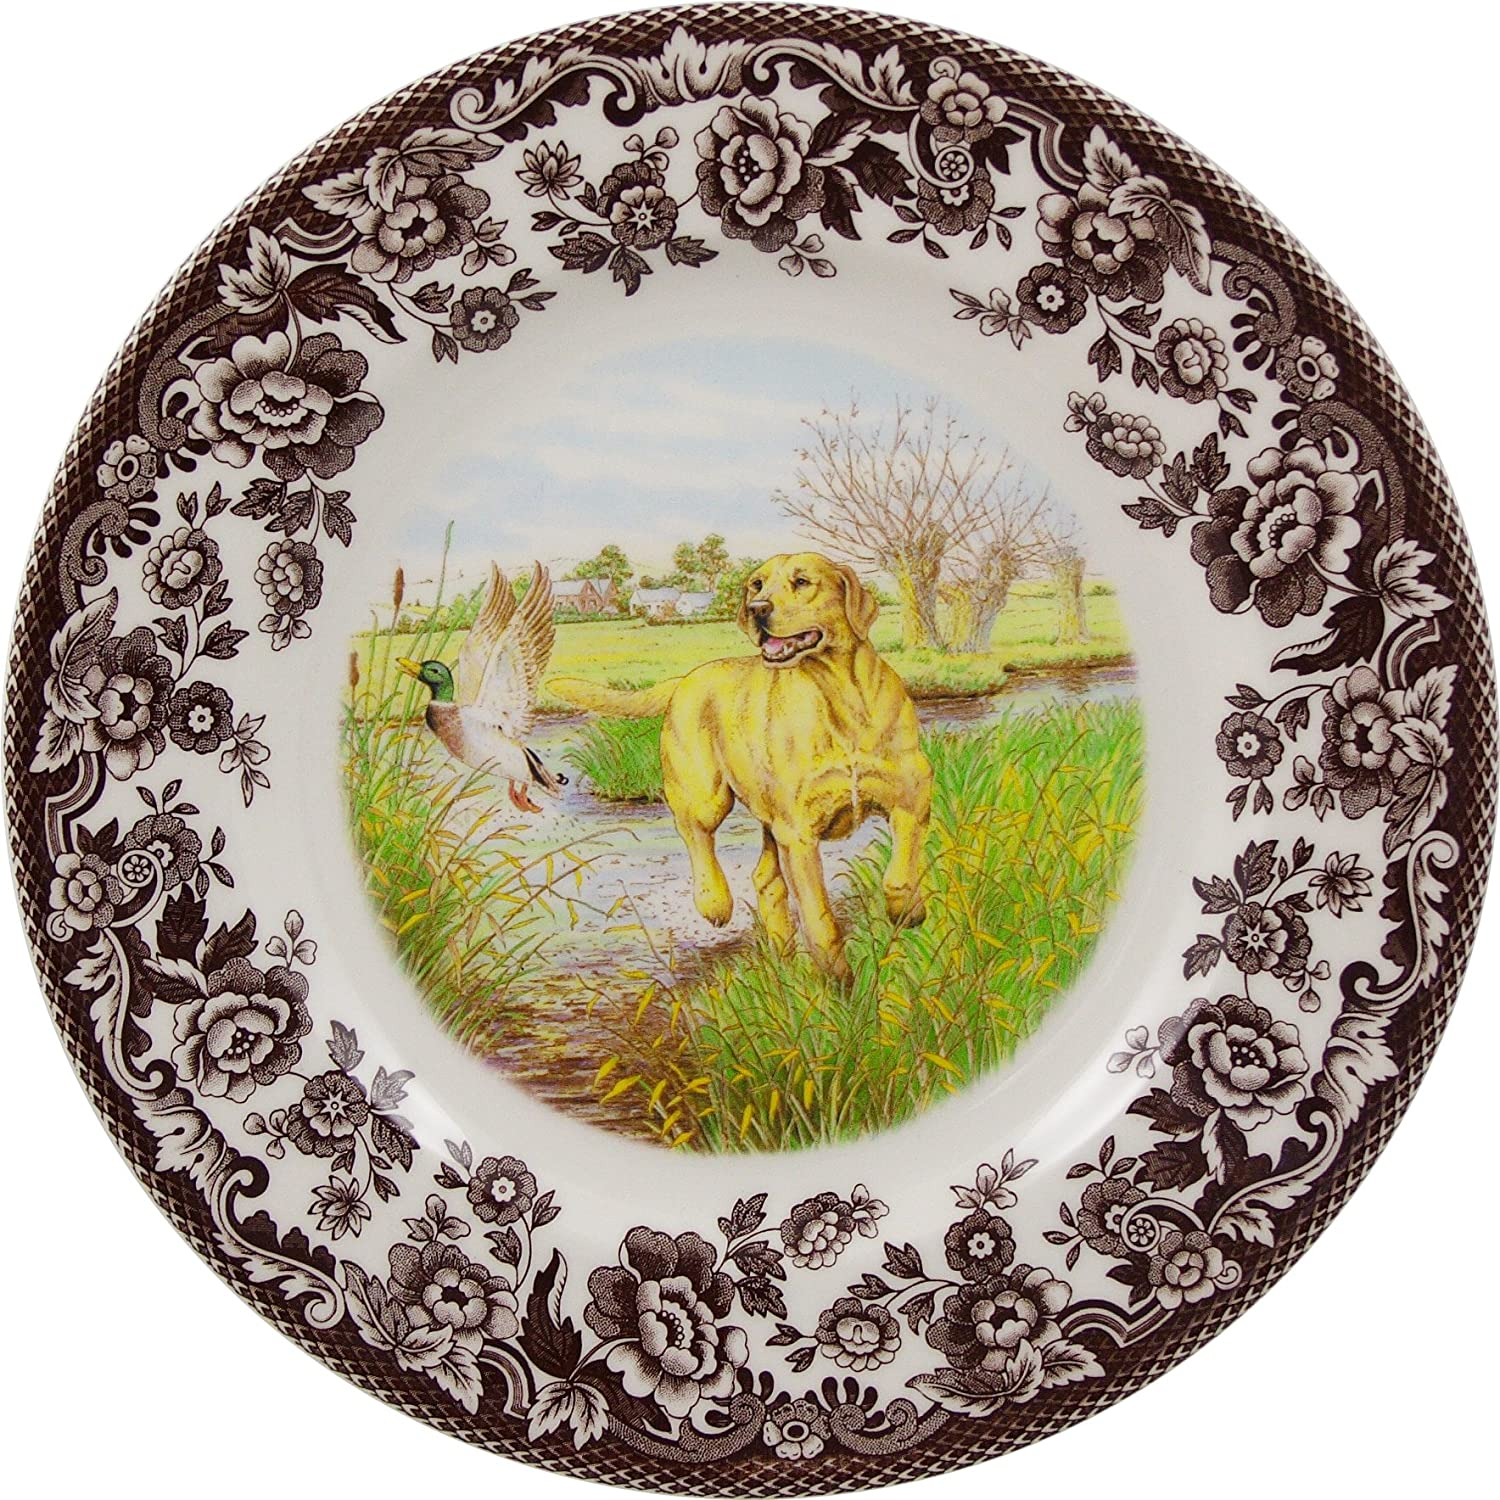 Spode Woodland Dinner Plate (Yellow Labrador Retriever)